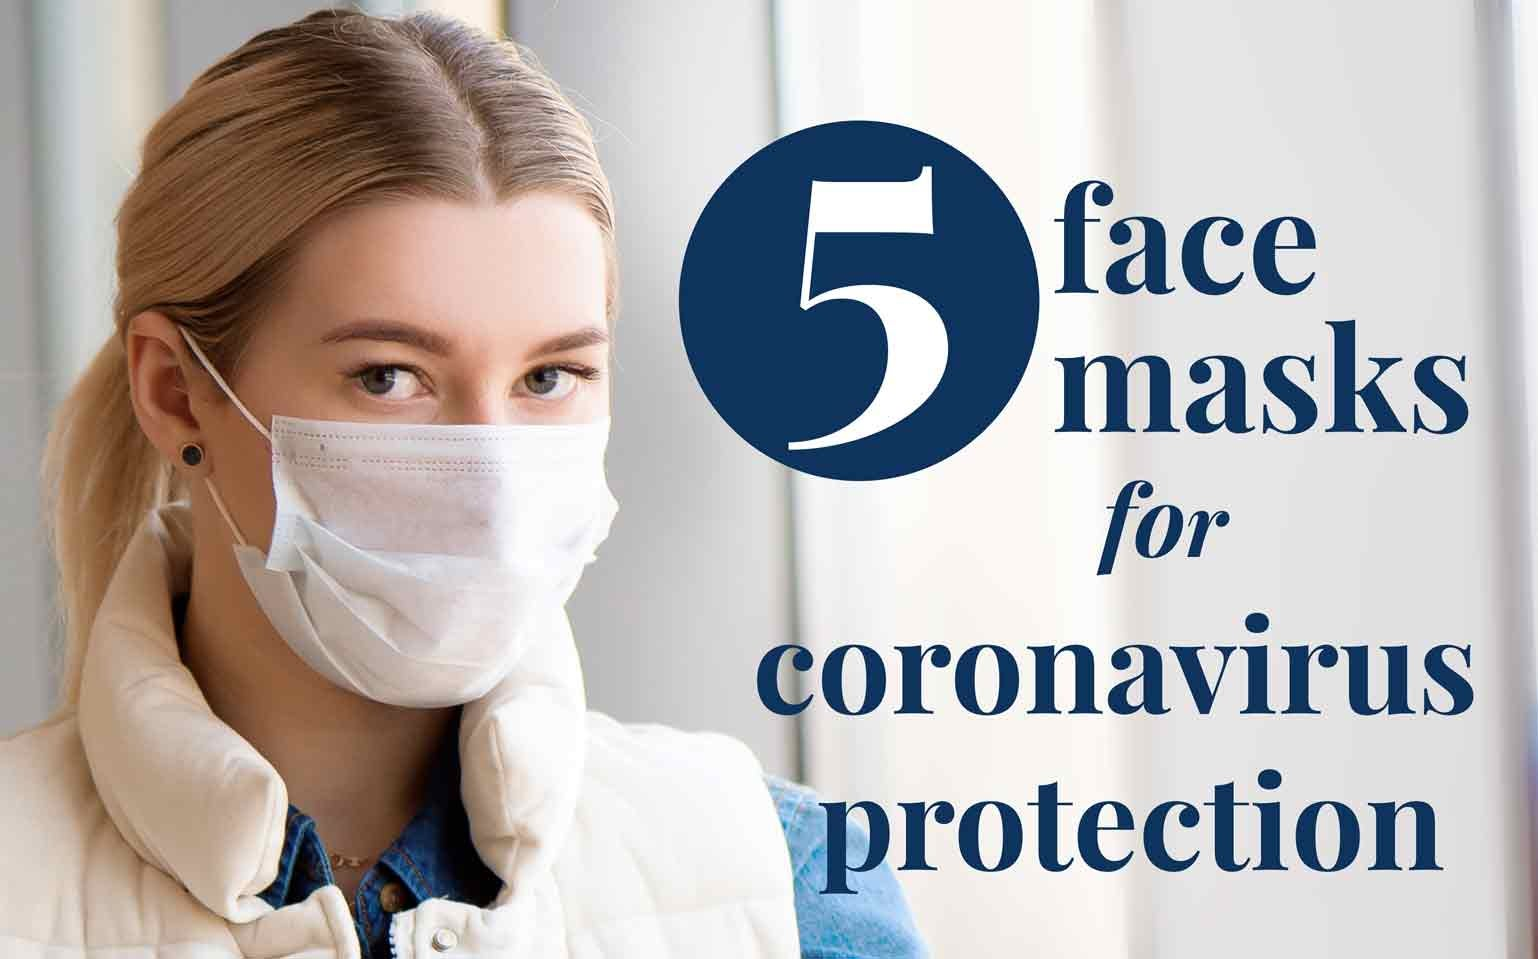 Best Face Masks for Coronavirus Protection | Surgical Masks for COVID-19